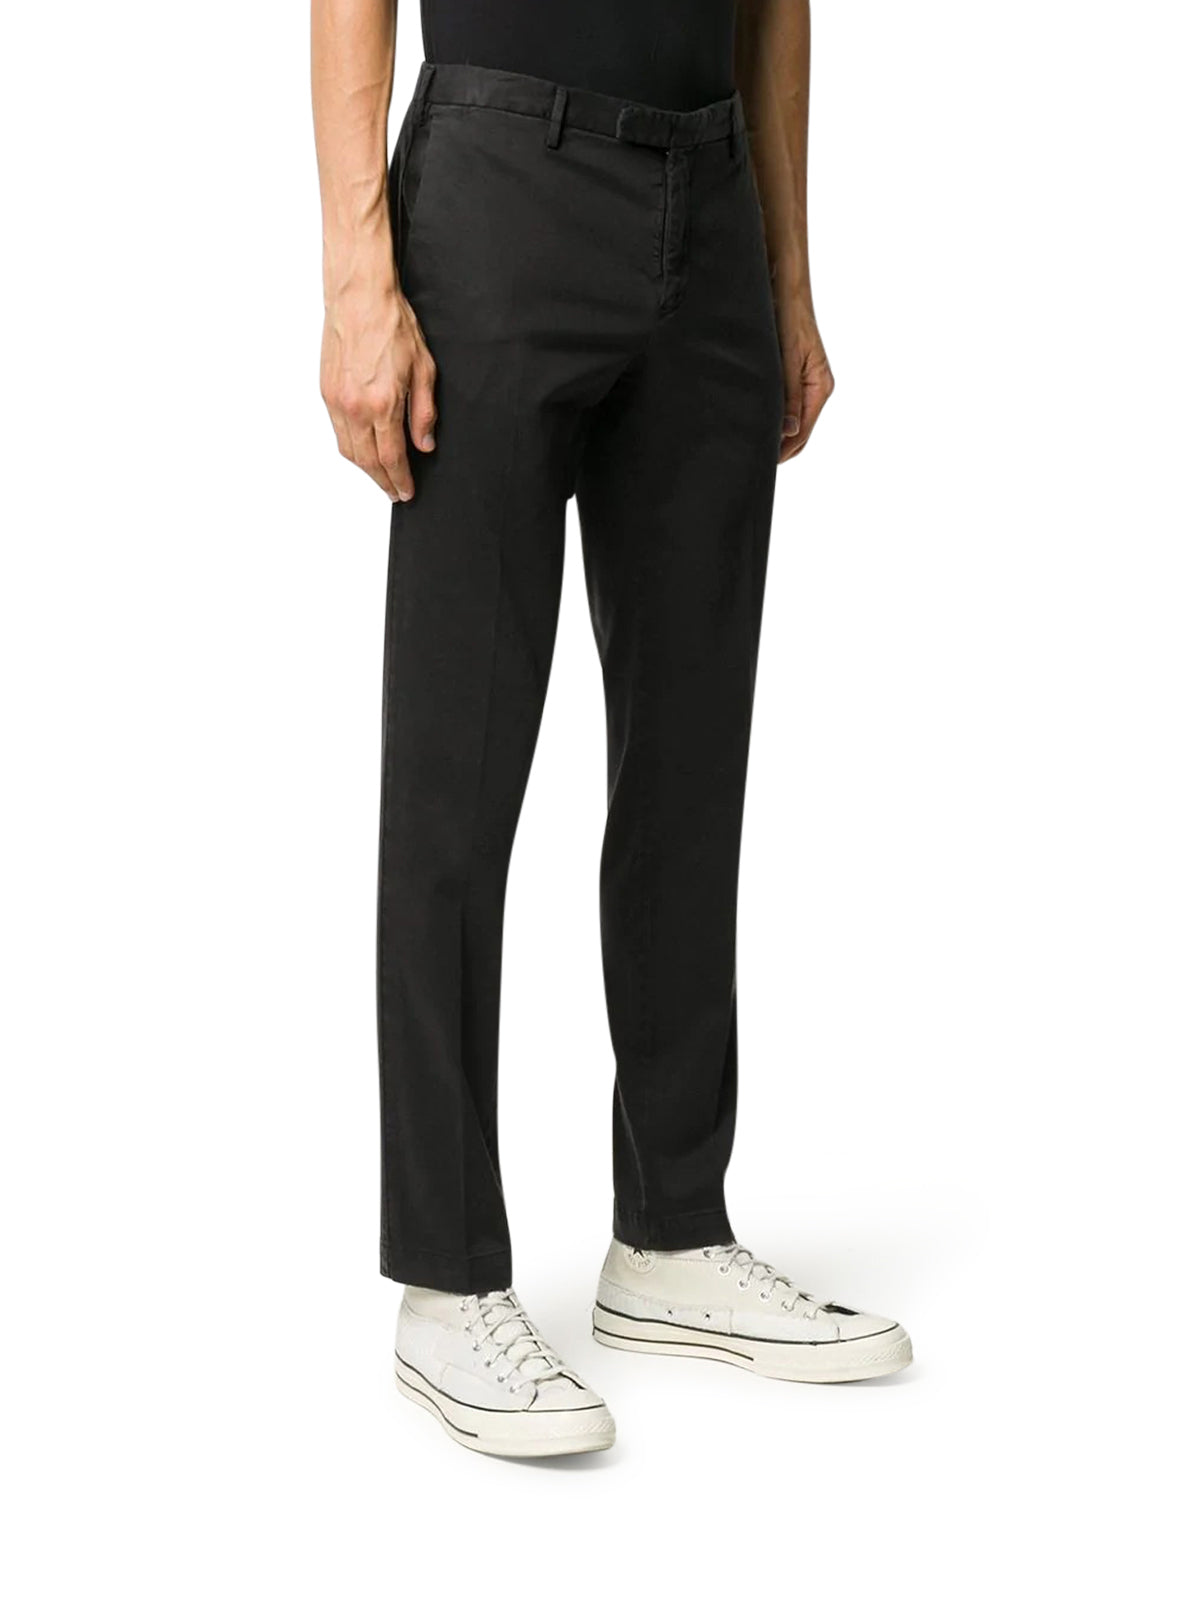 tapered-leg chino trousers